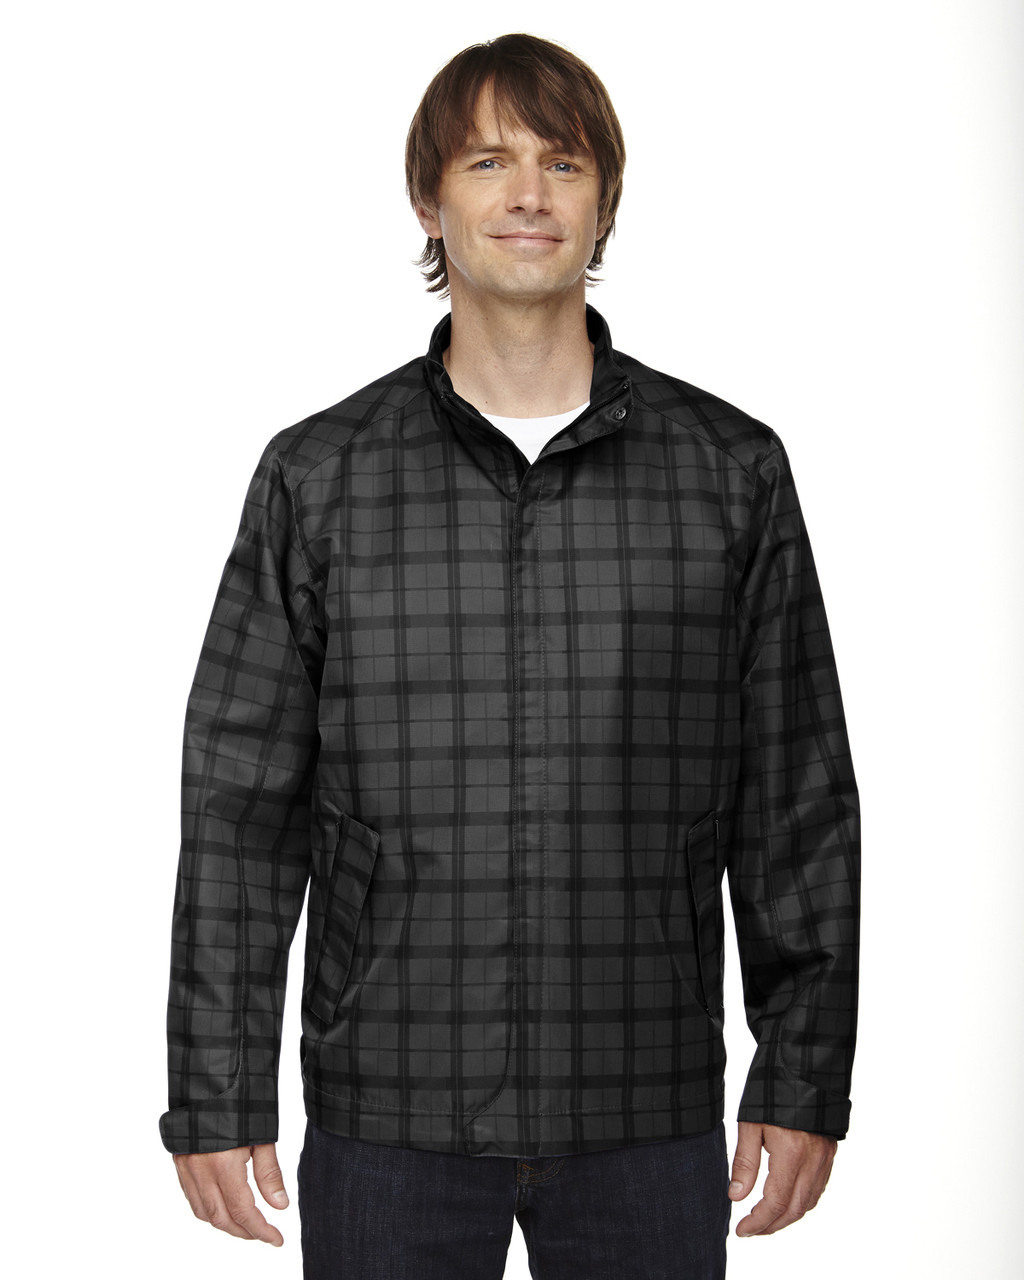 Black - 88671 North End Sport Blue Locale Lightweight City Plaid Jacket   Blankclothing.ca